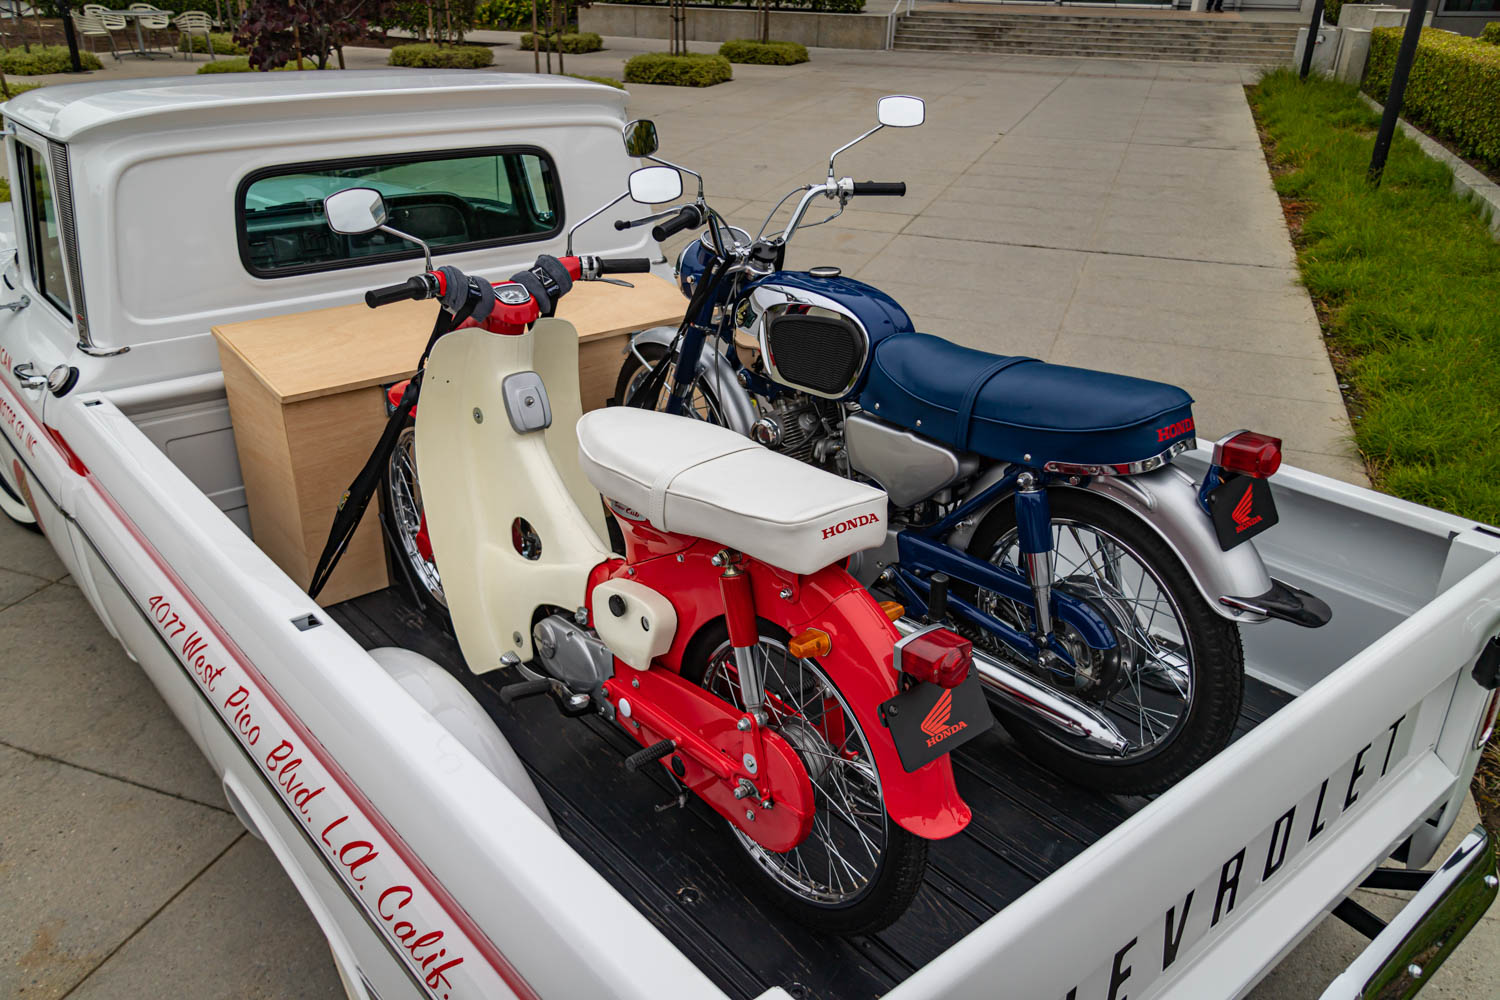 American Honda 60th Anniversary Chevy Delivery Truck motorcycle